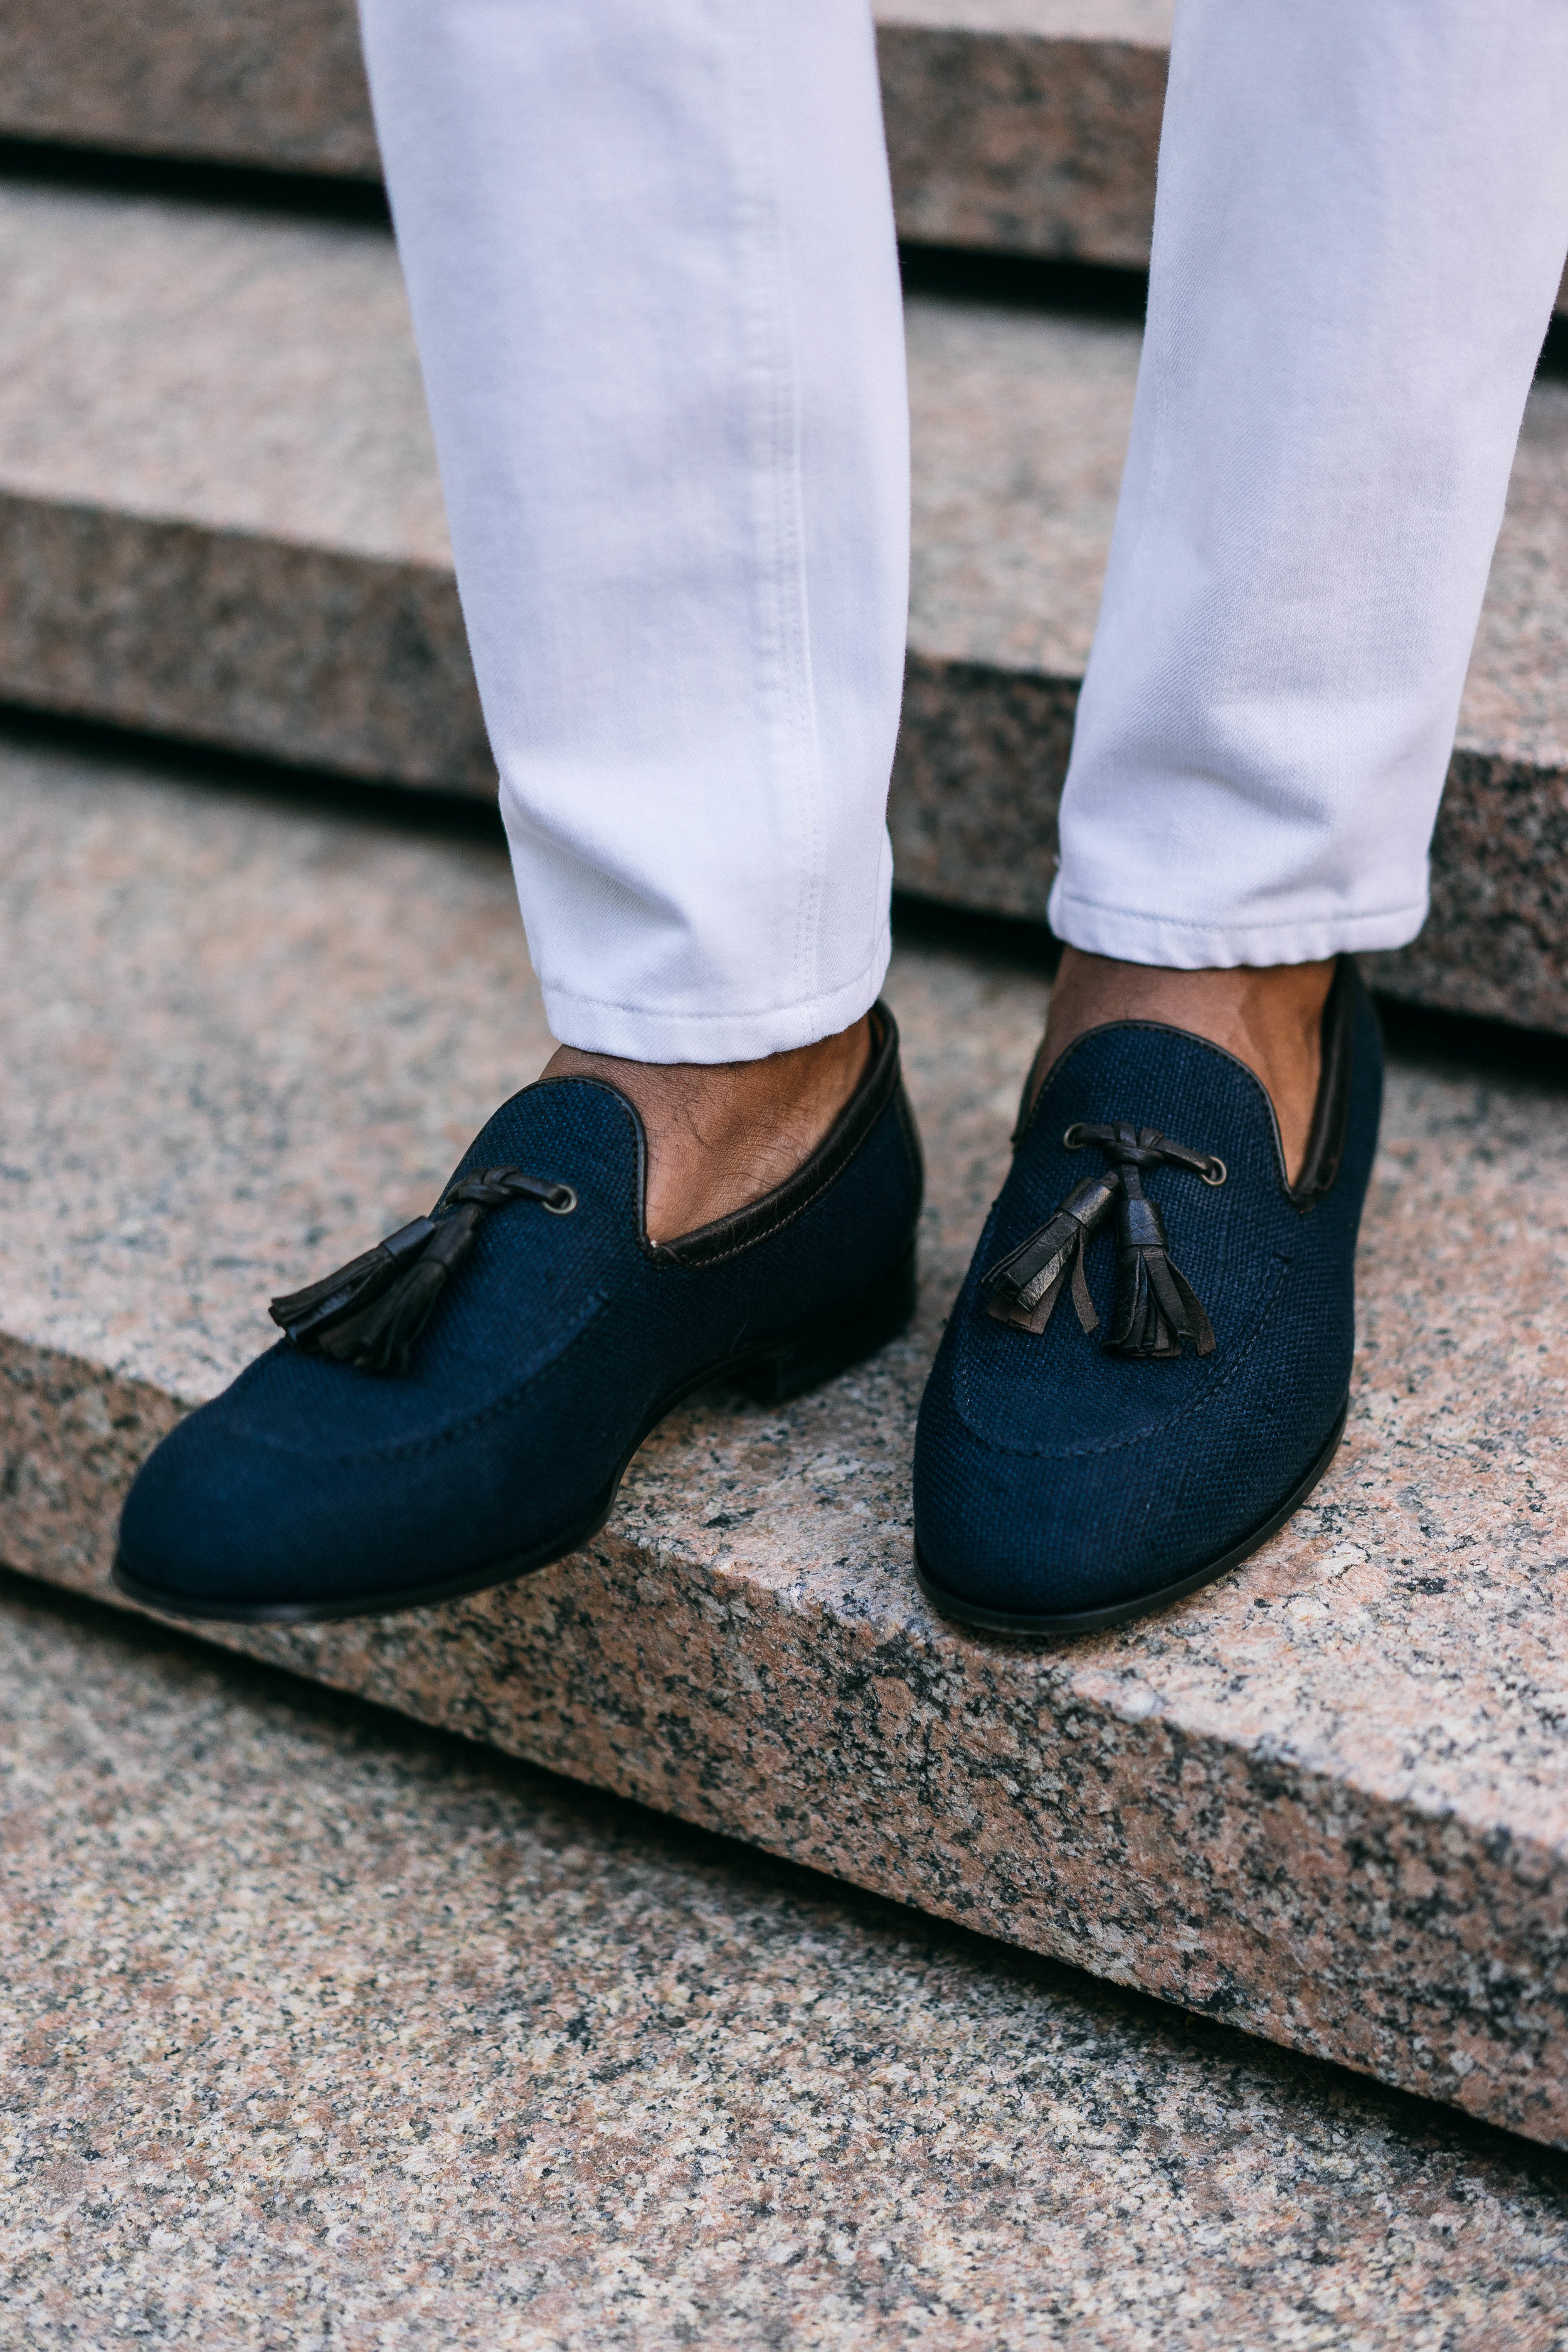 """I also wanted to mention these new beauties. I was in need of some new navy tassel loafers and thought, """"surely I'll replace my suede pair with another suede pair""""... Then along came these canvas stunners from the SUITSUPPLY sale. The sale is over, but I highlight these to encourage you to  think outside the box  if/when looking for a twist on a staple."""